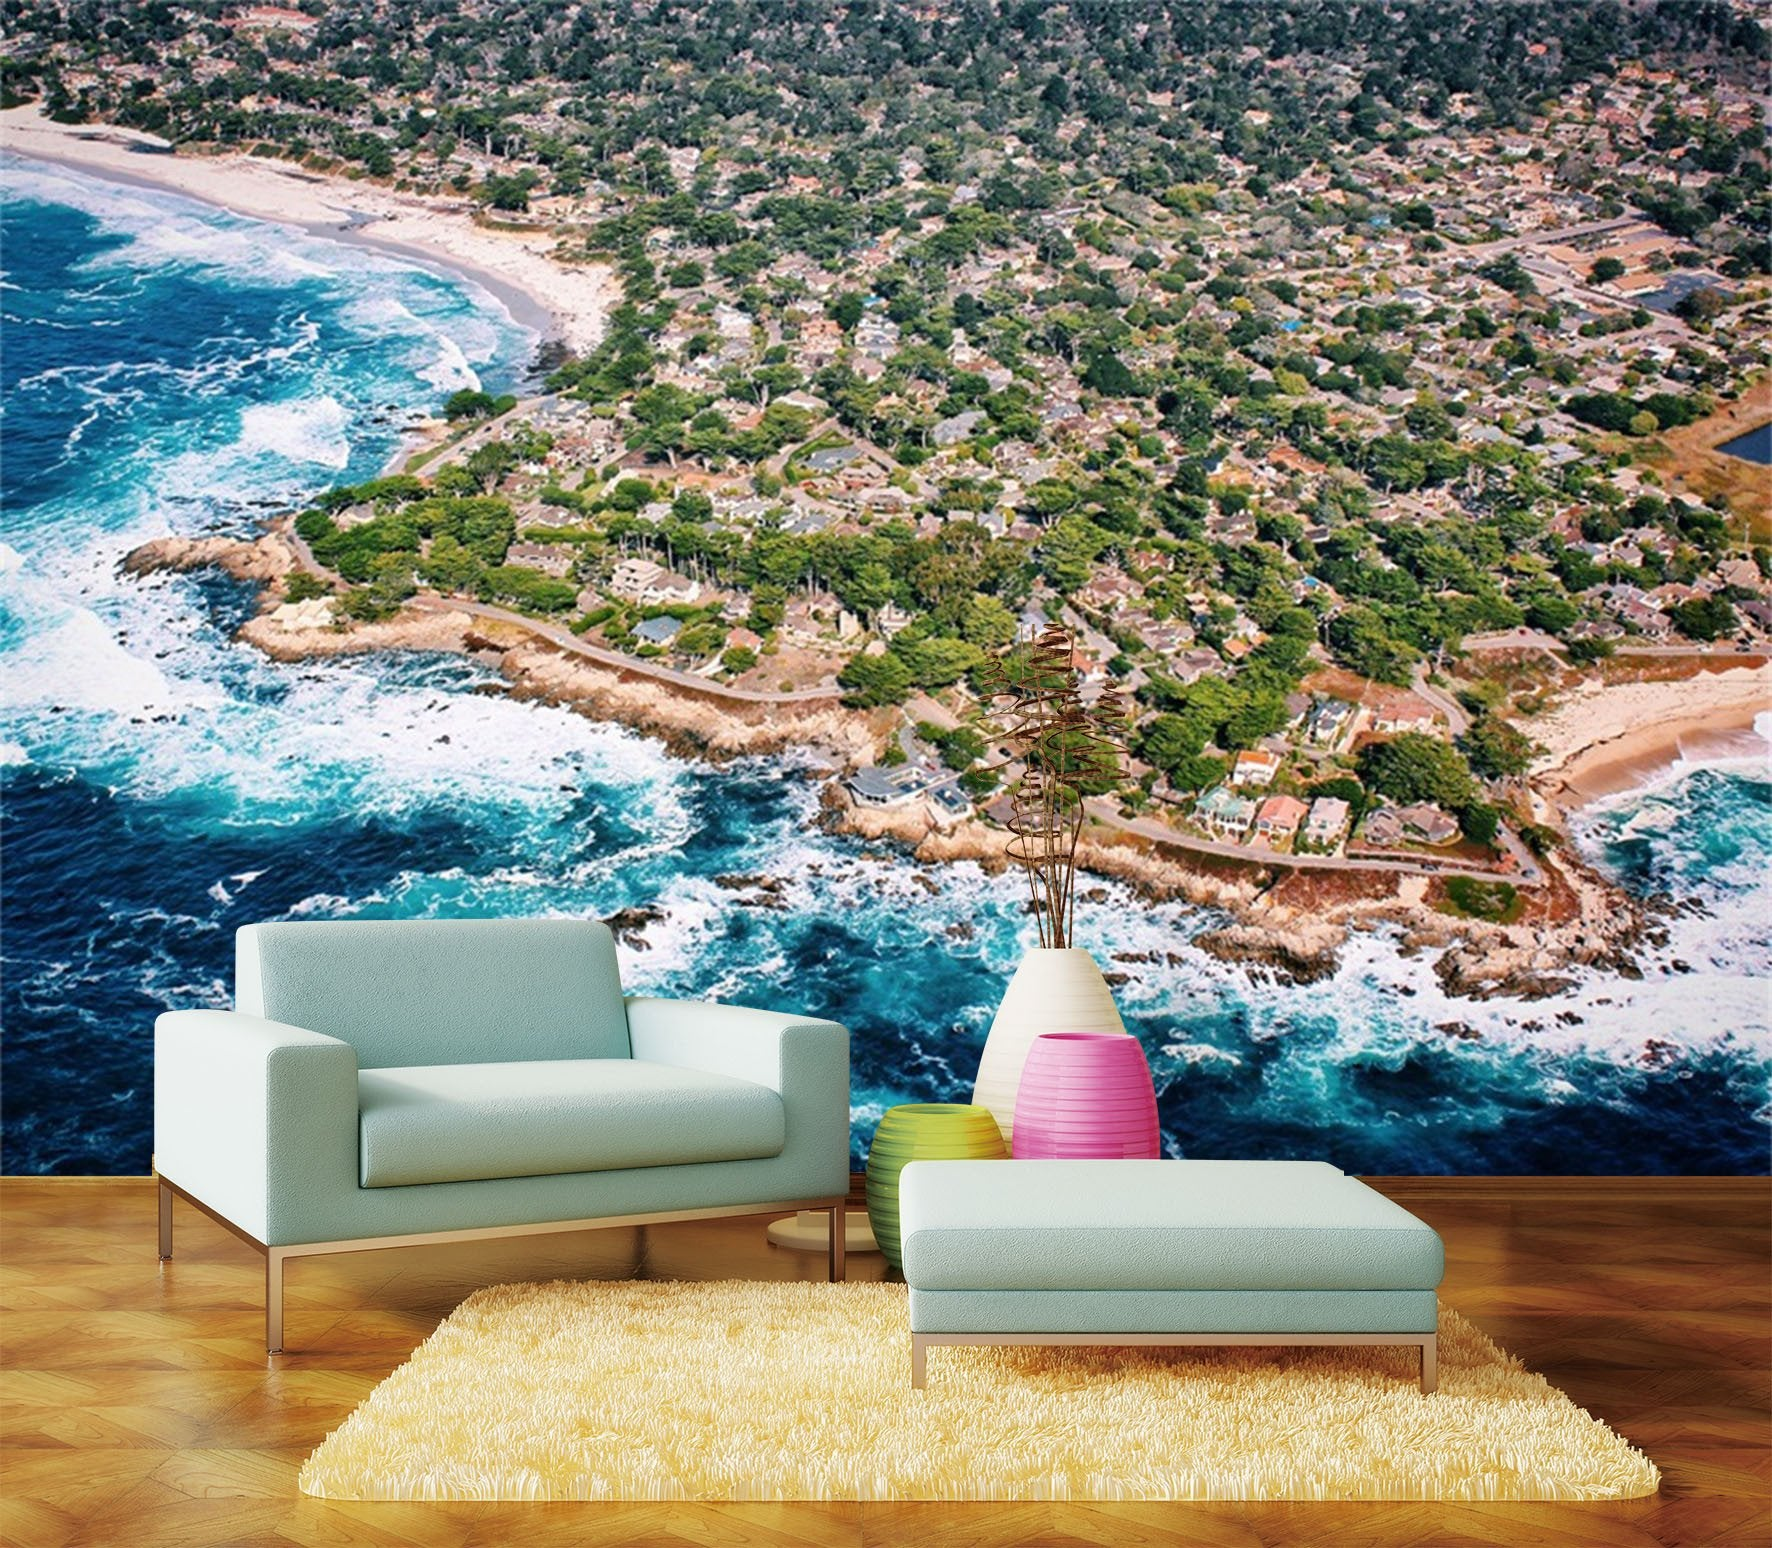 3D Beach Coastal 231 Wallpaper AJ Wallpaper